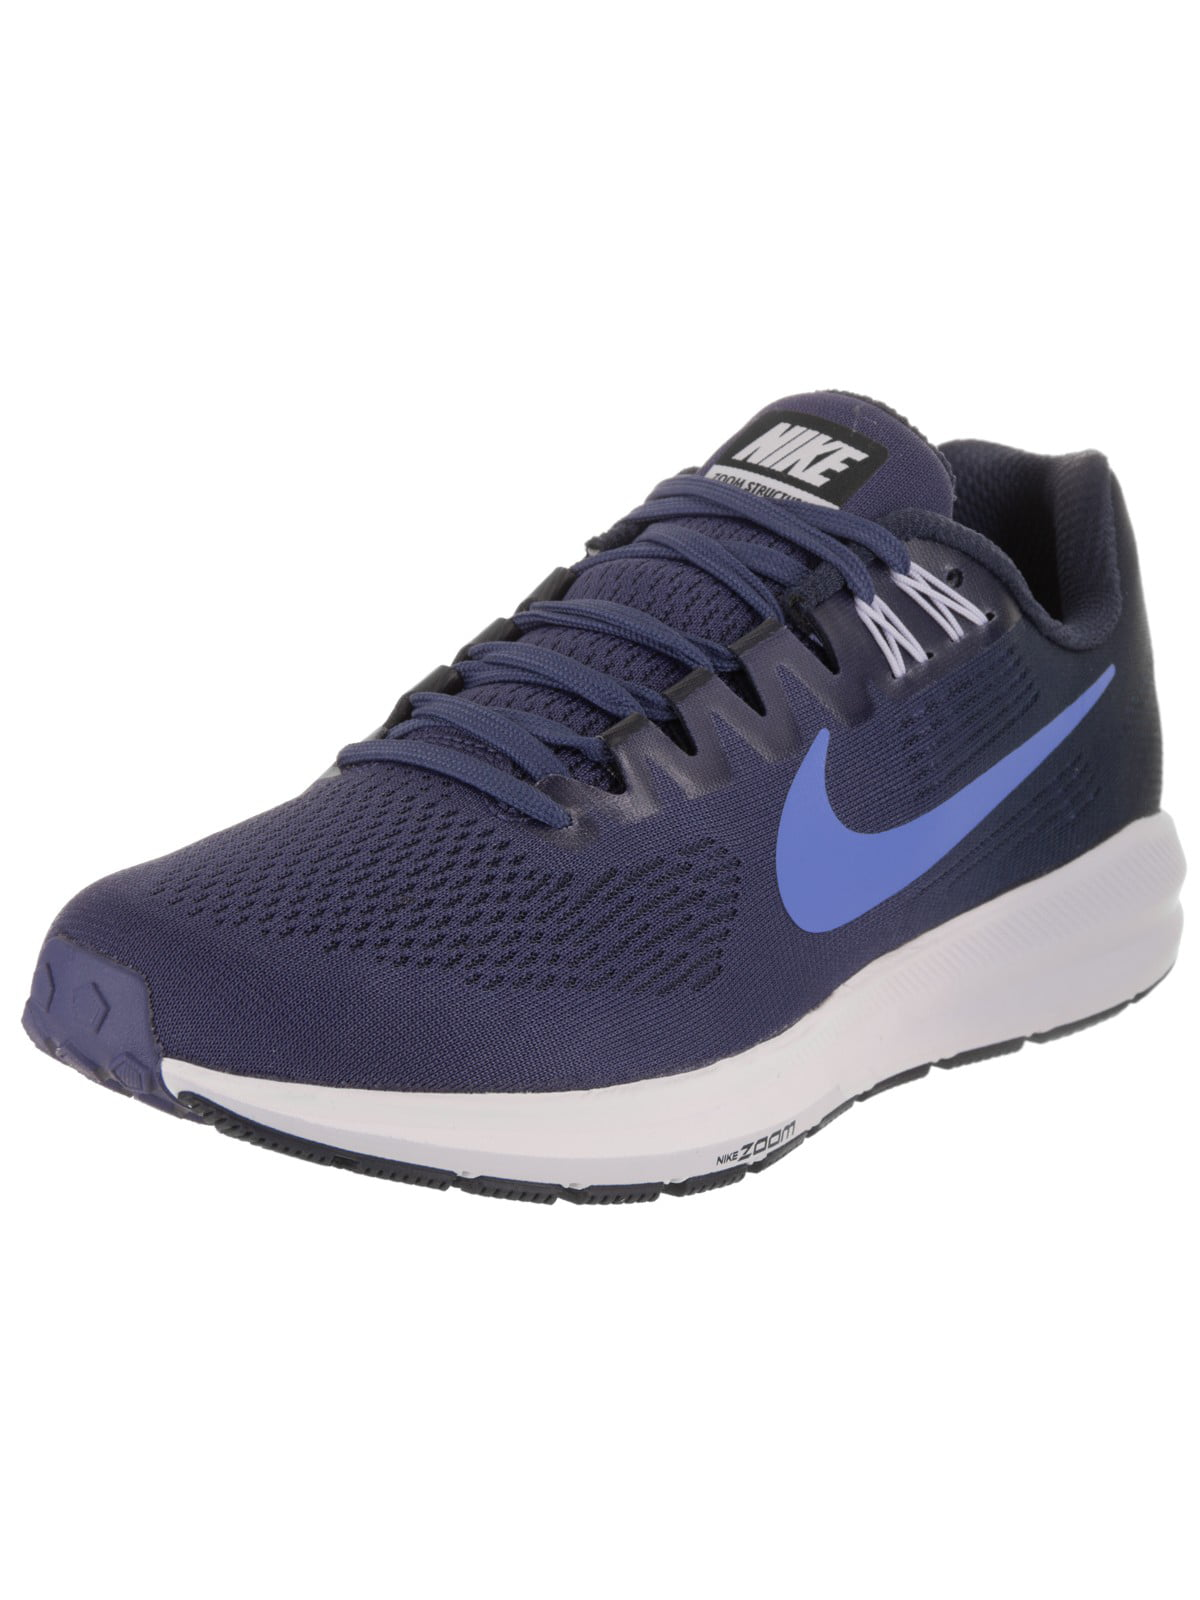 sports shoes 4f963 8f637 Nike Women's Air Zoom Structure 21 Running Shoe